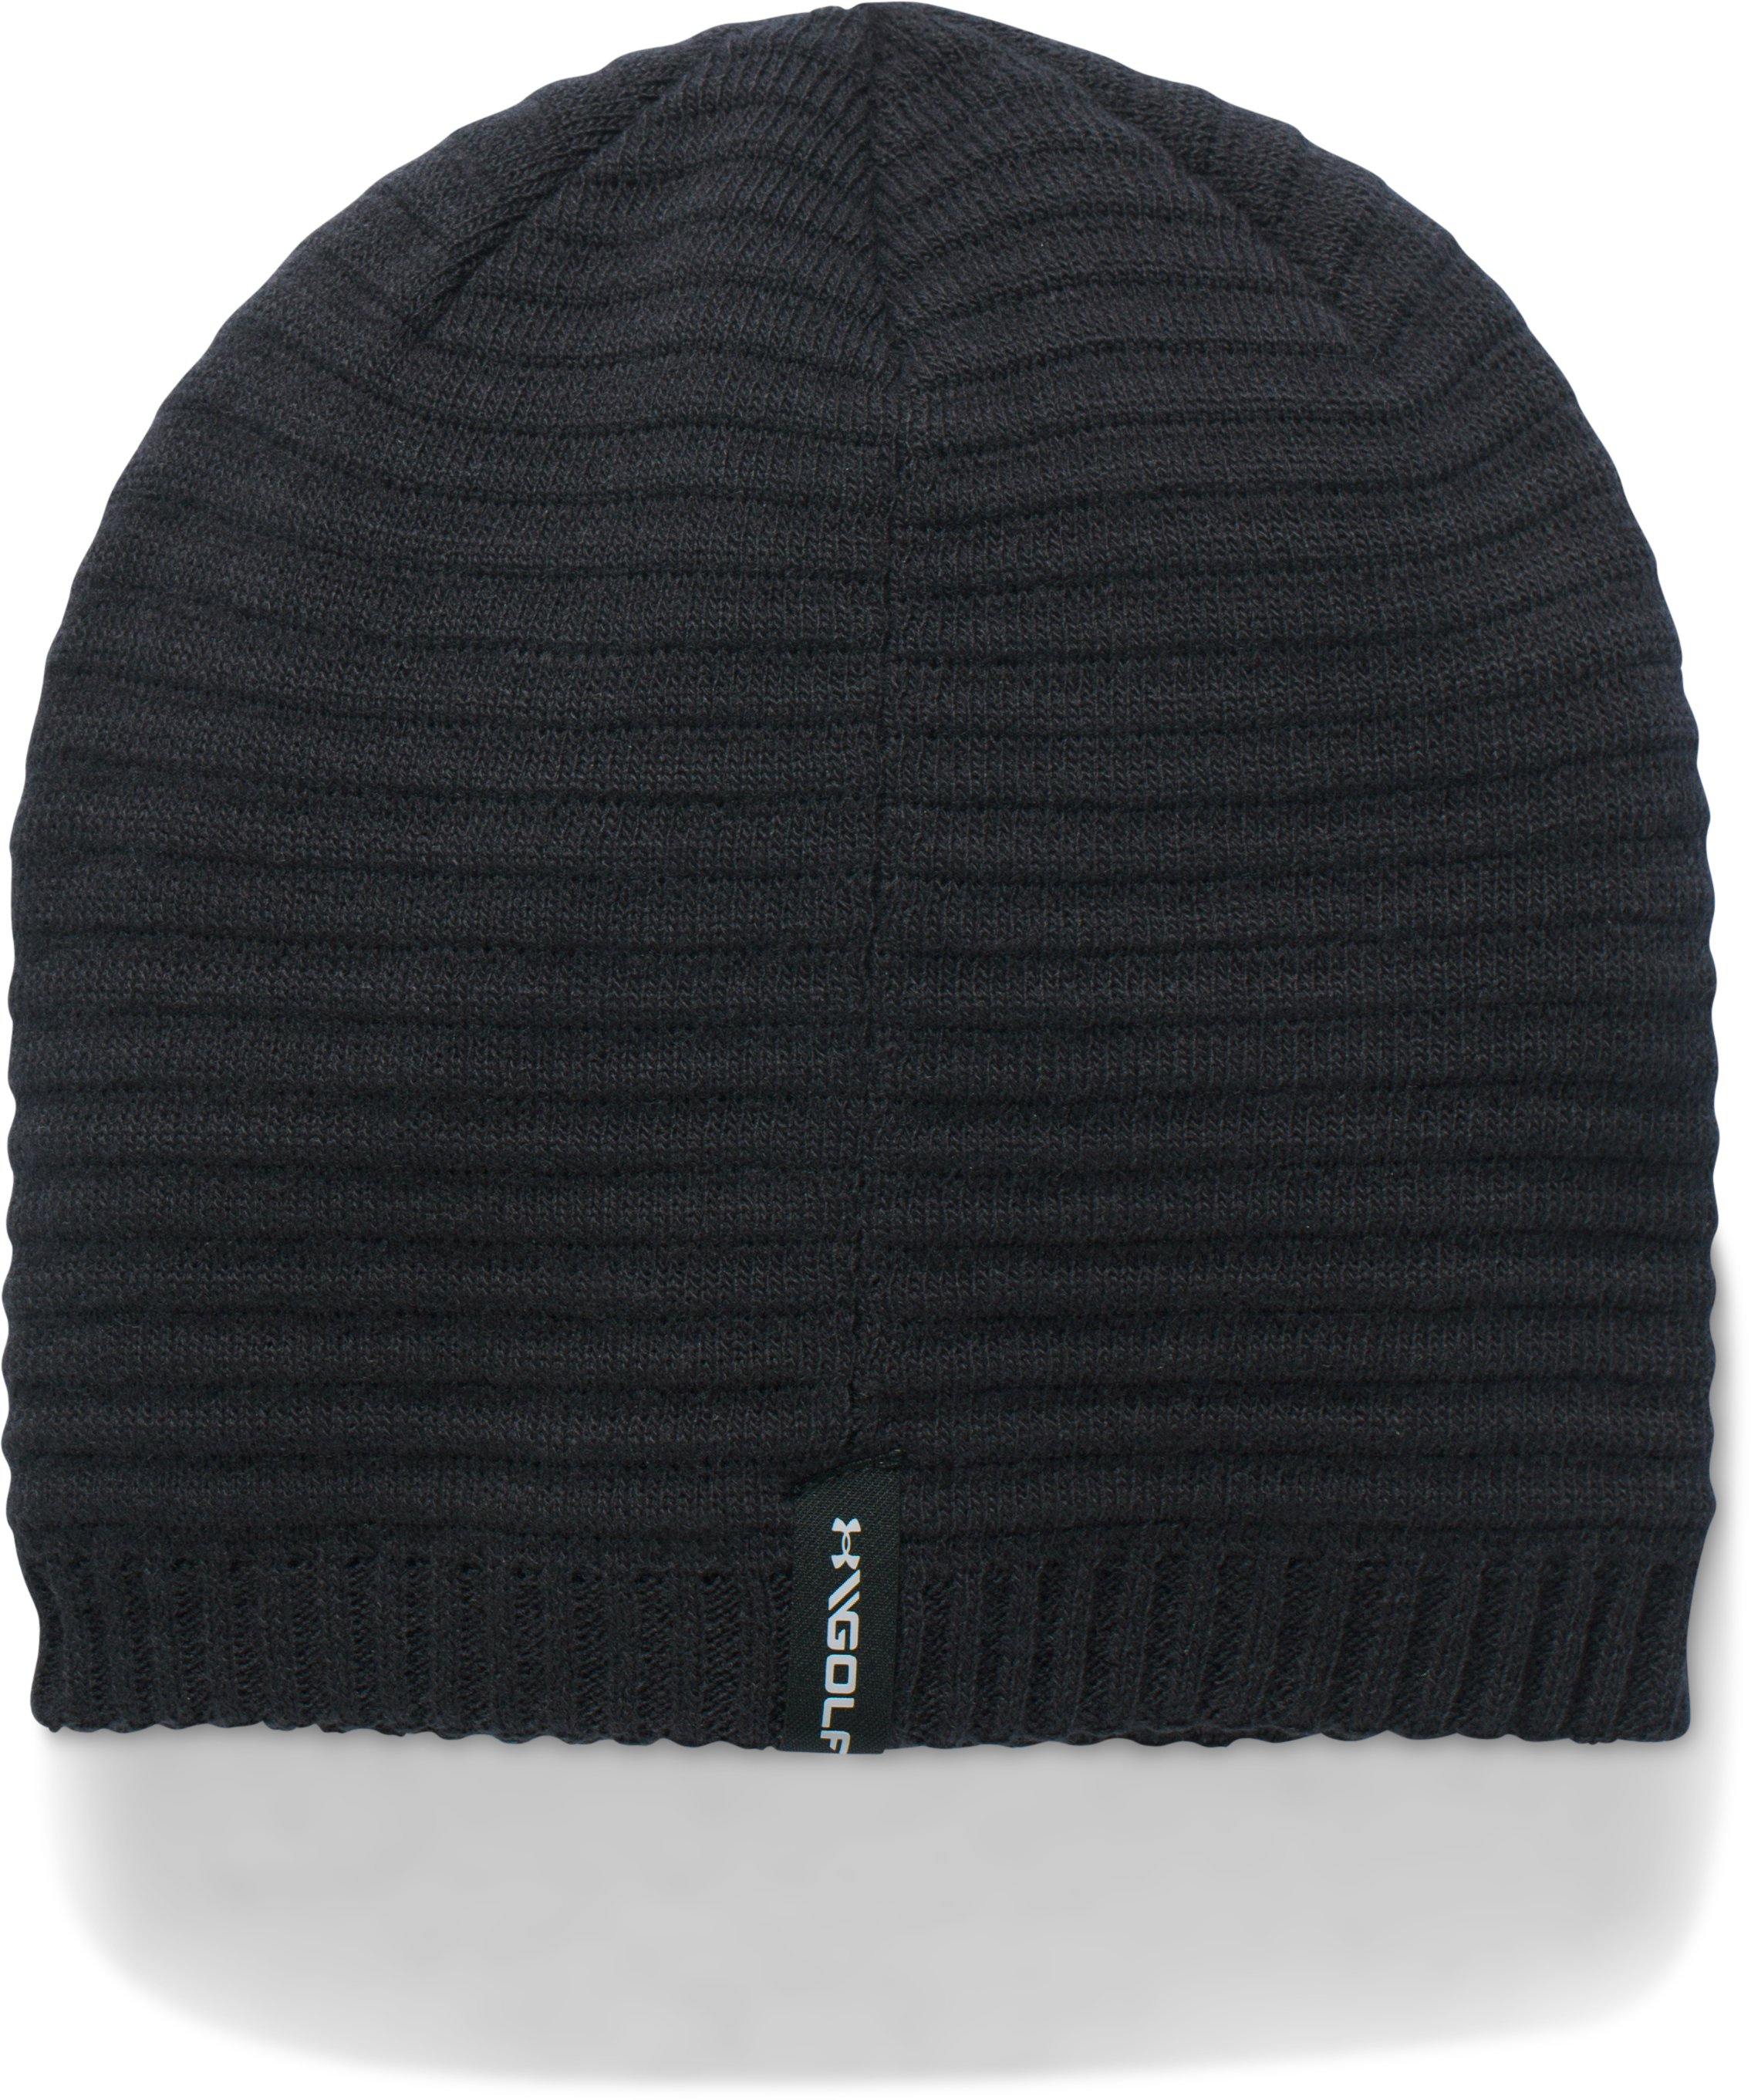 Men's UA Jacquard Knit Beanie, Black